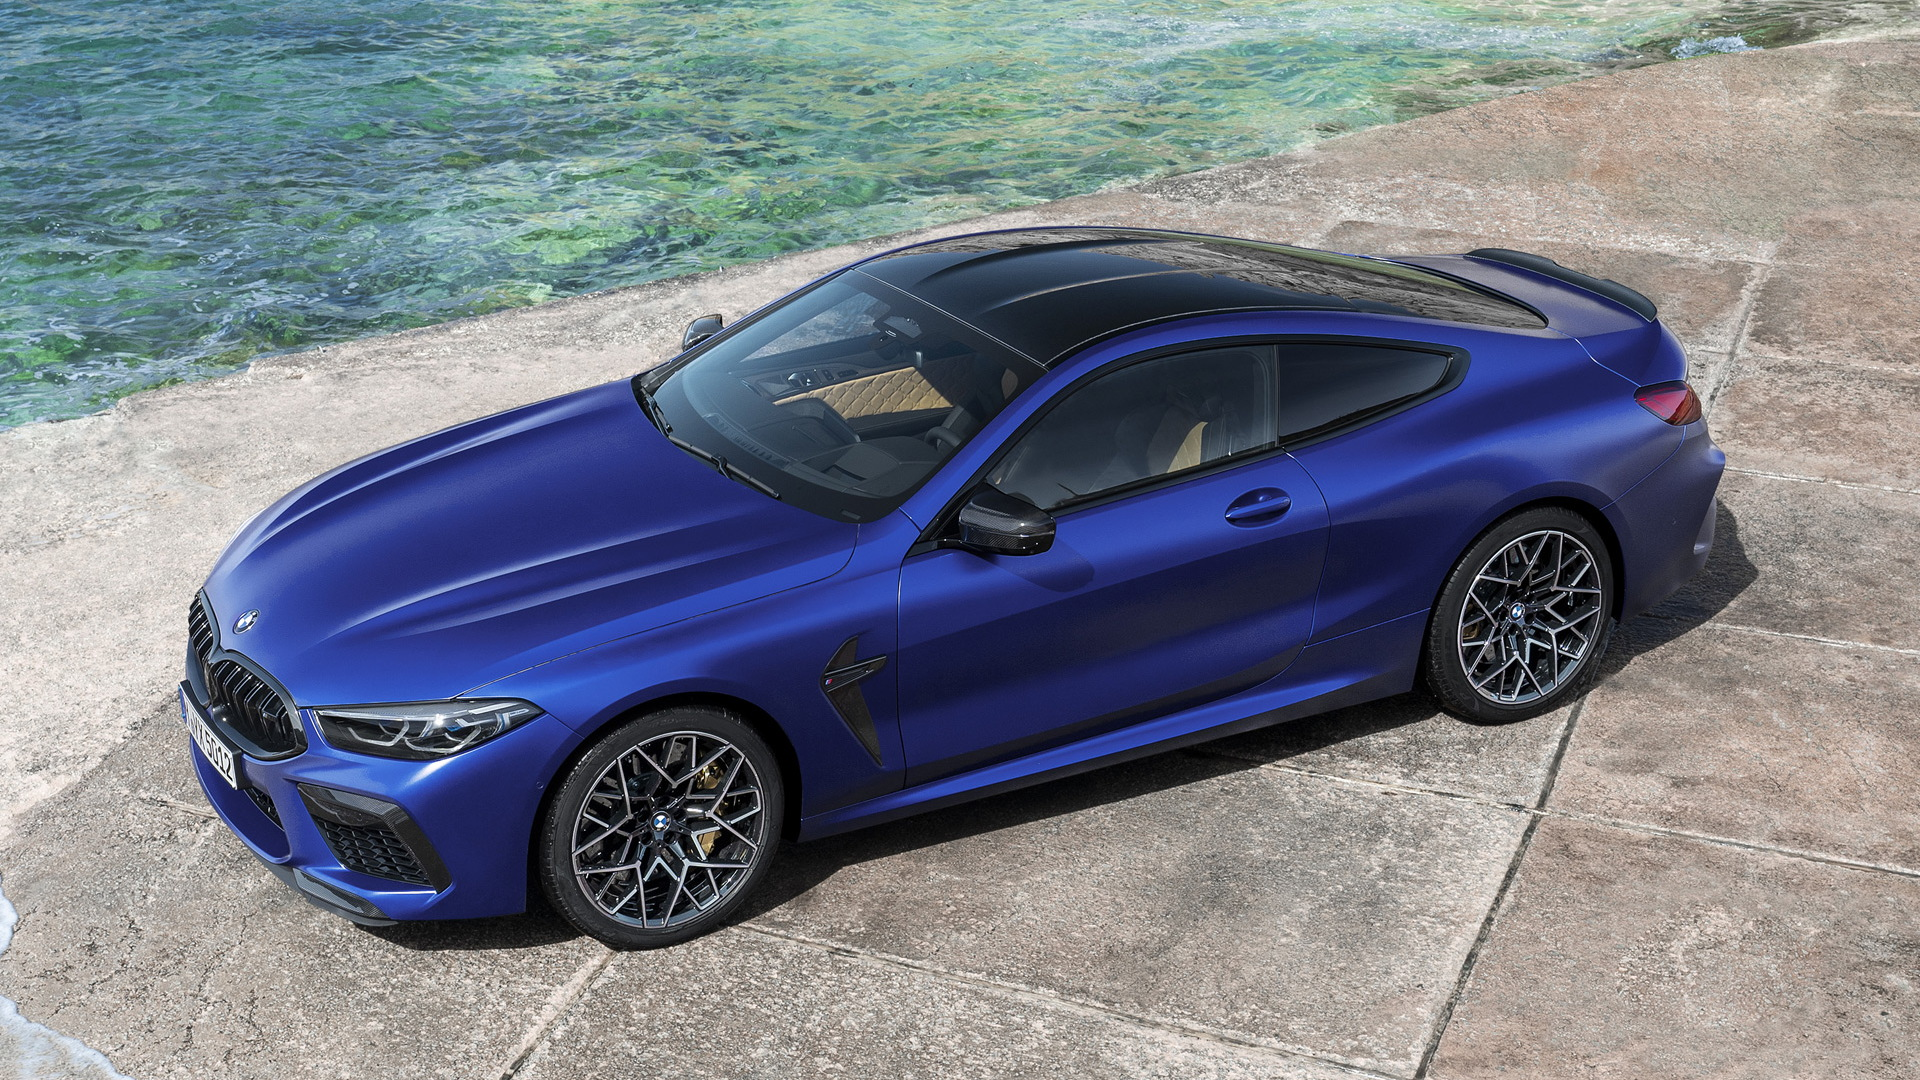 2020 Bmw M8 And M8 Convertible Arrive With Over 600 Horsepower